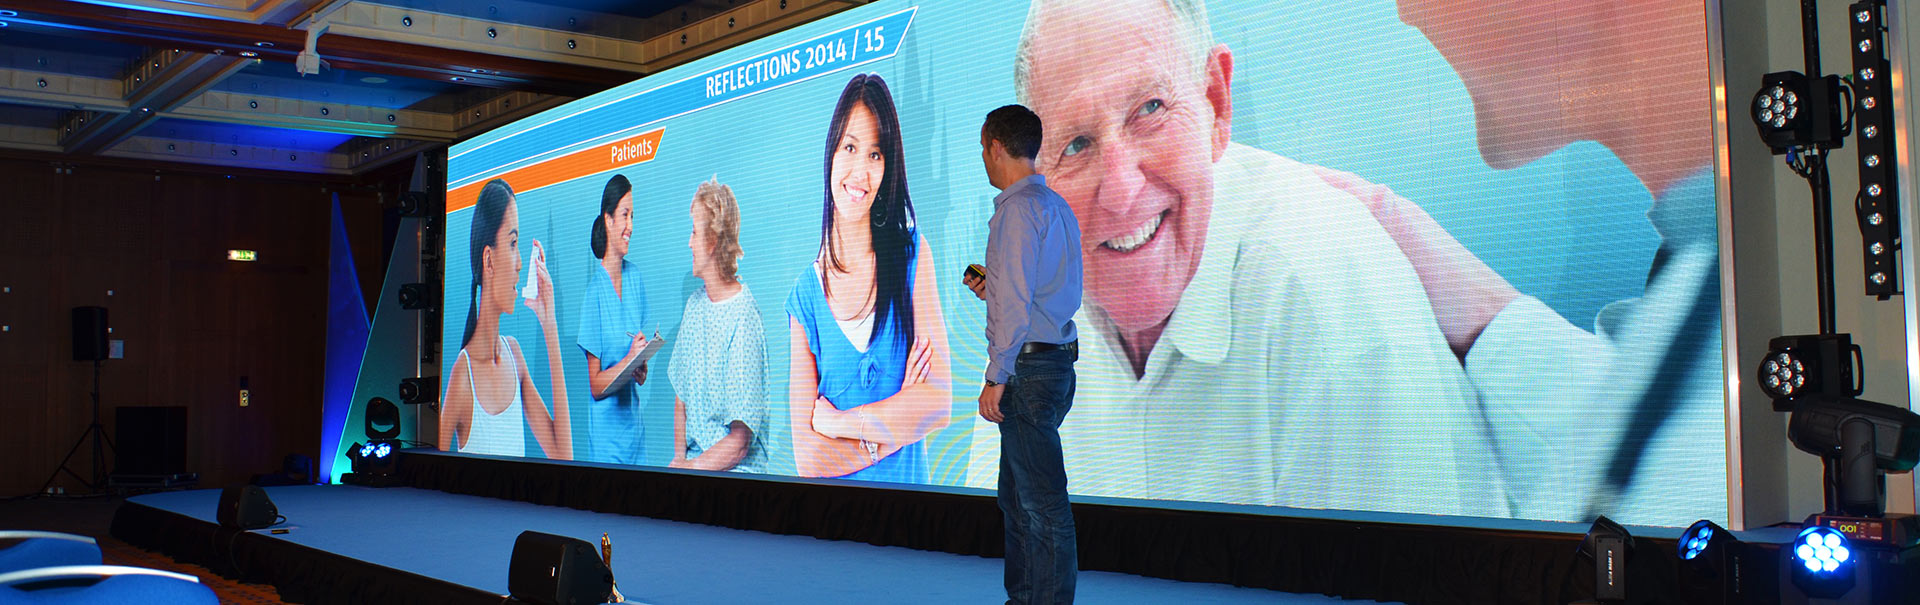 Conference LED Screen hire